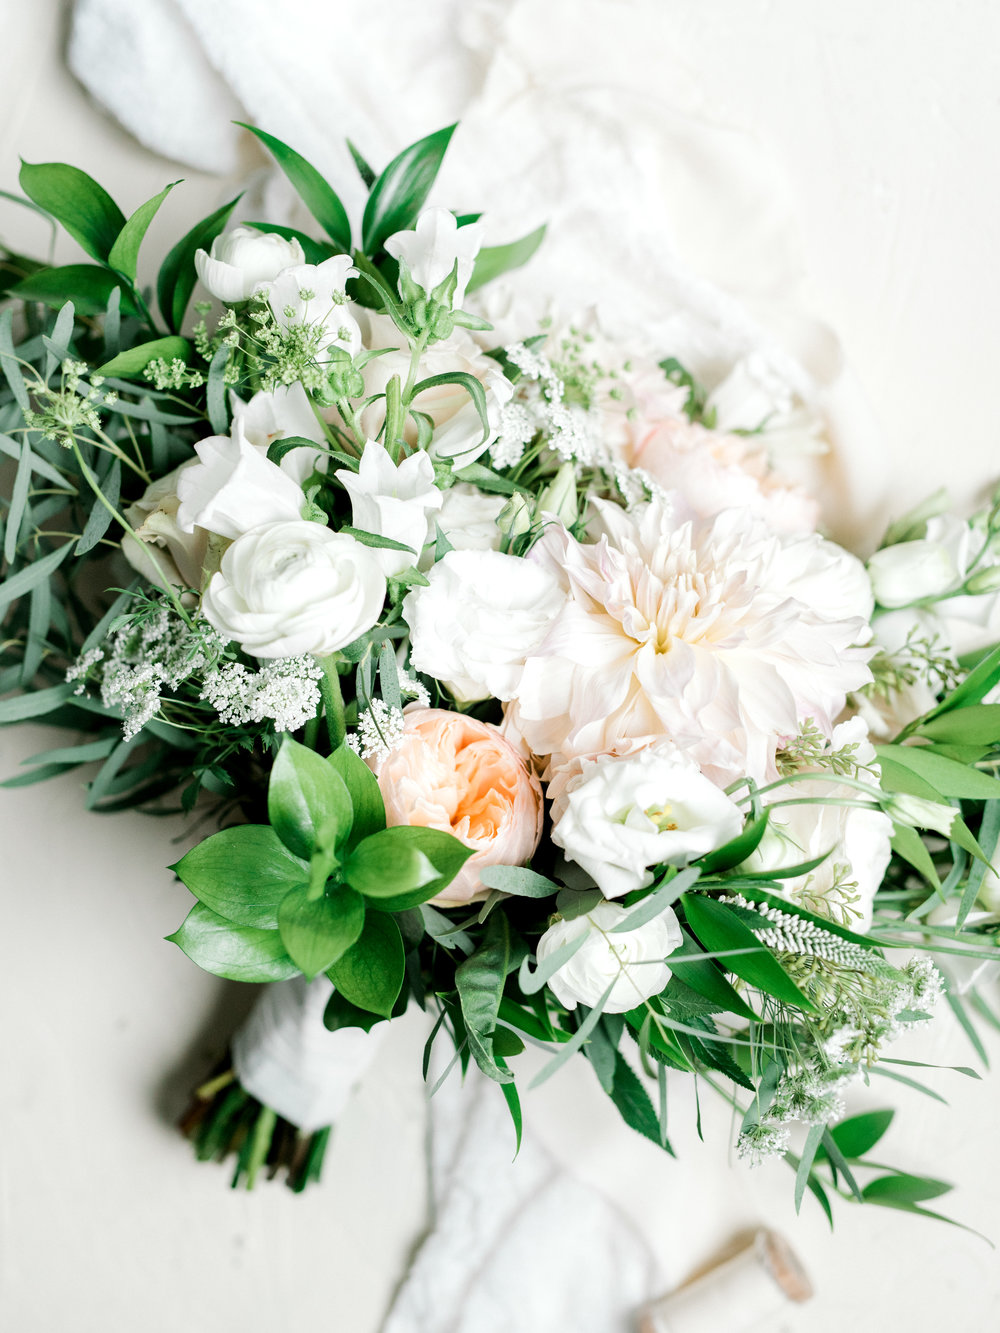 Simple white and blush flowers in this wild bouquet were perfect for Alicia and Mike's bright boho chic Tyler Gardens wedding in Bucks County